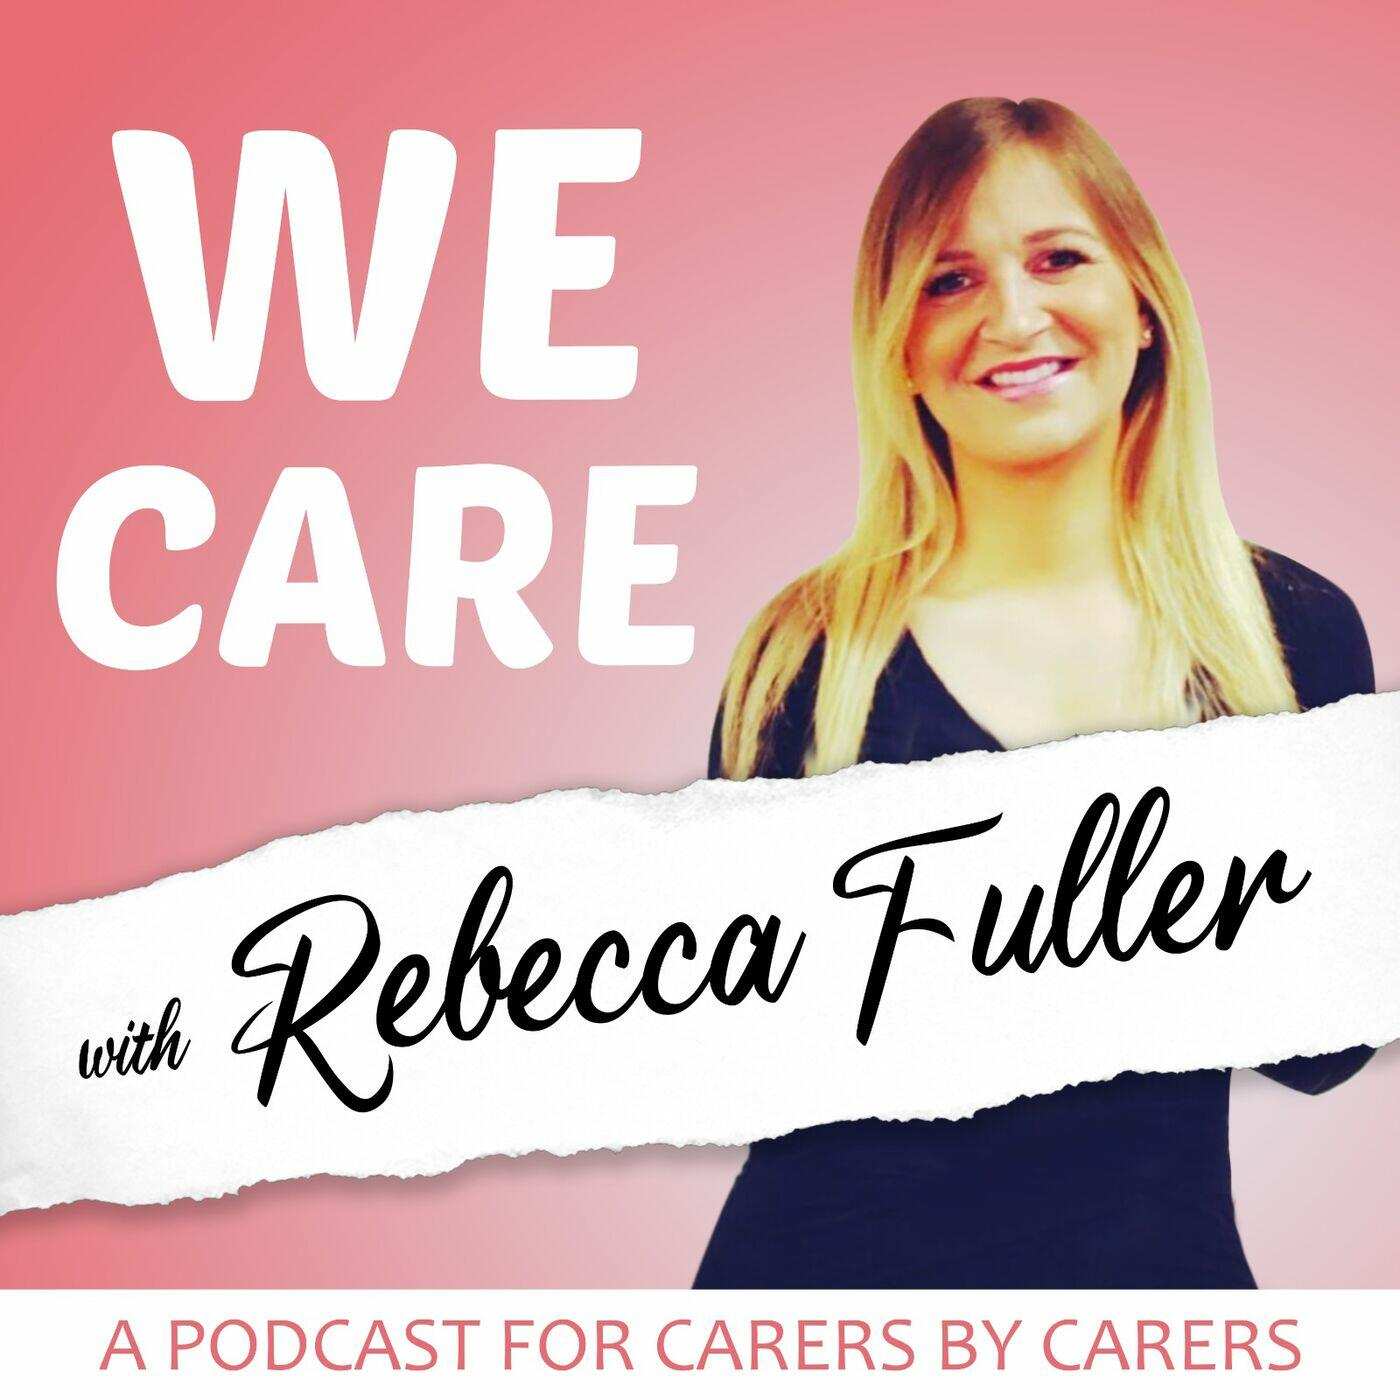 We Care with Rebecca Fuller